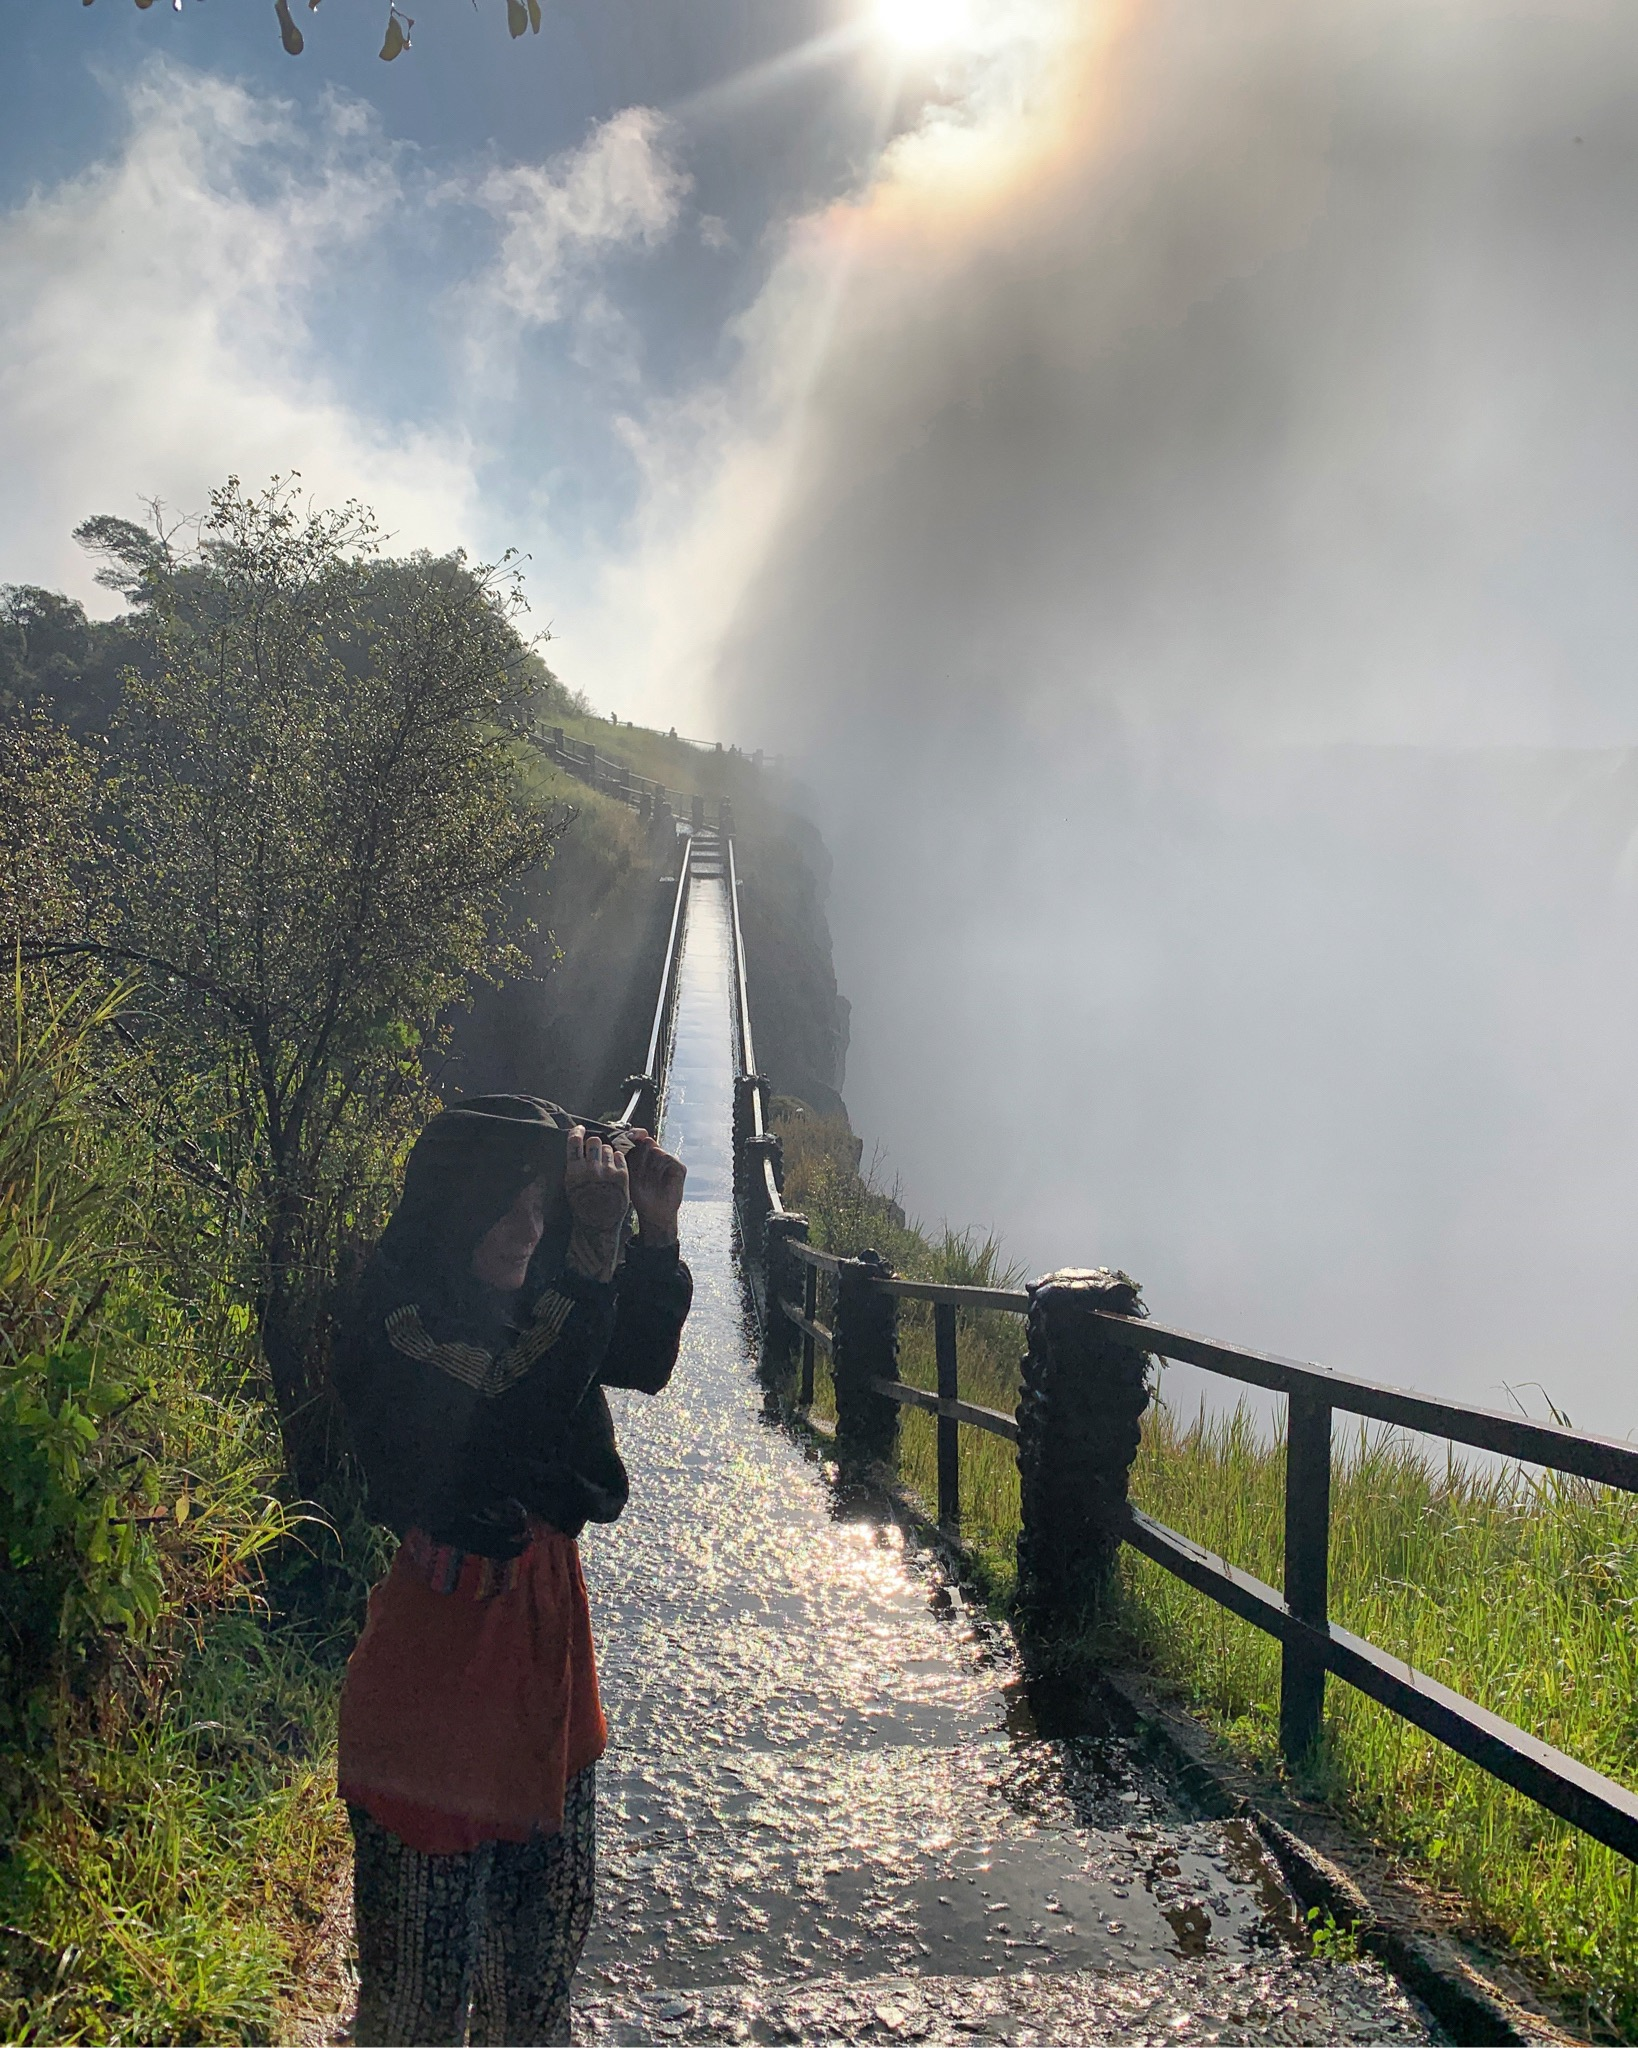 The whole right side of this photo is the falls. And the chick in the photo (me) is feeling quite lost but she's made it this far so there's that.